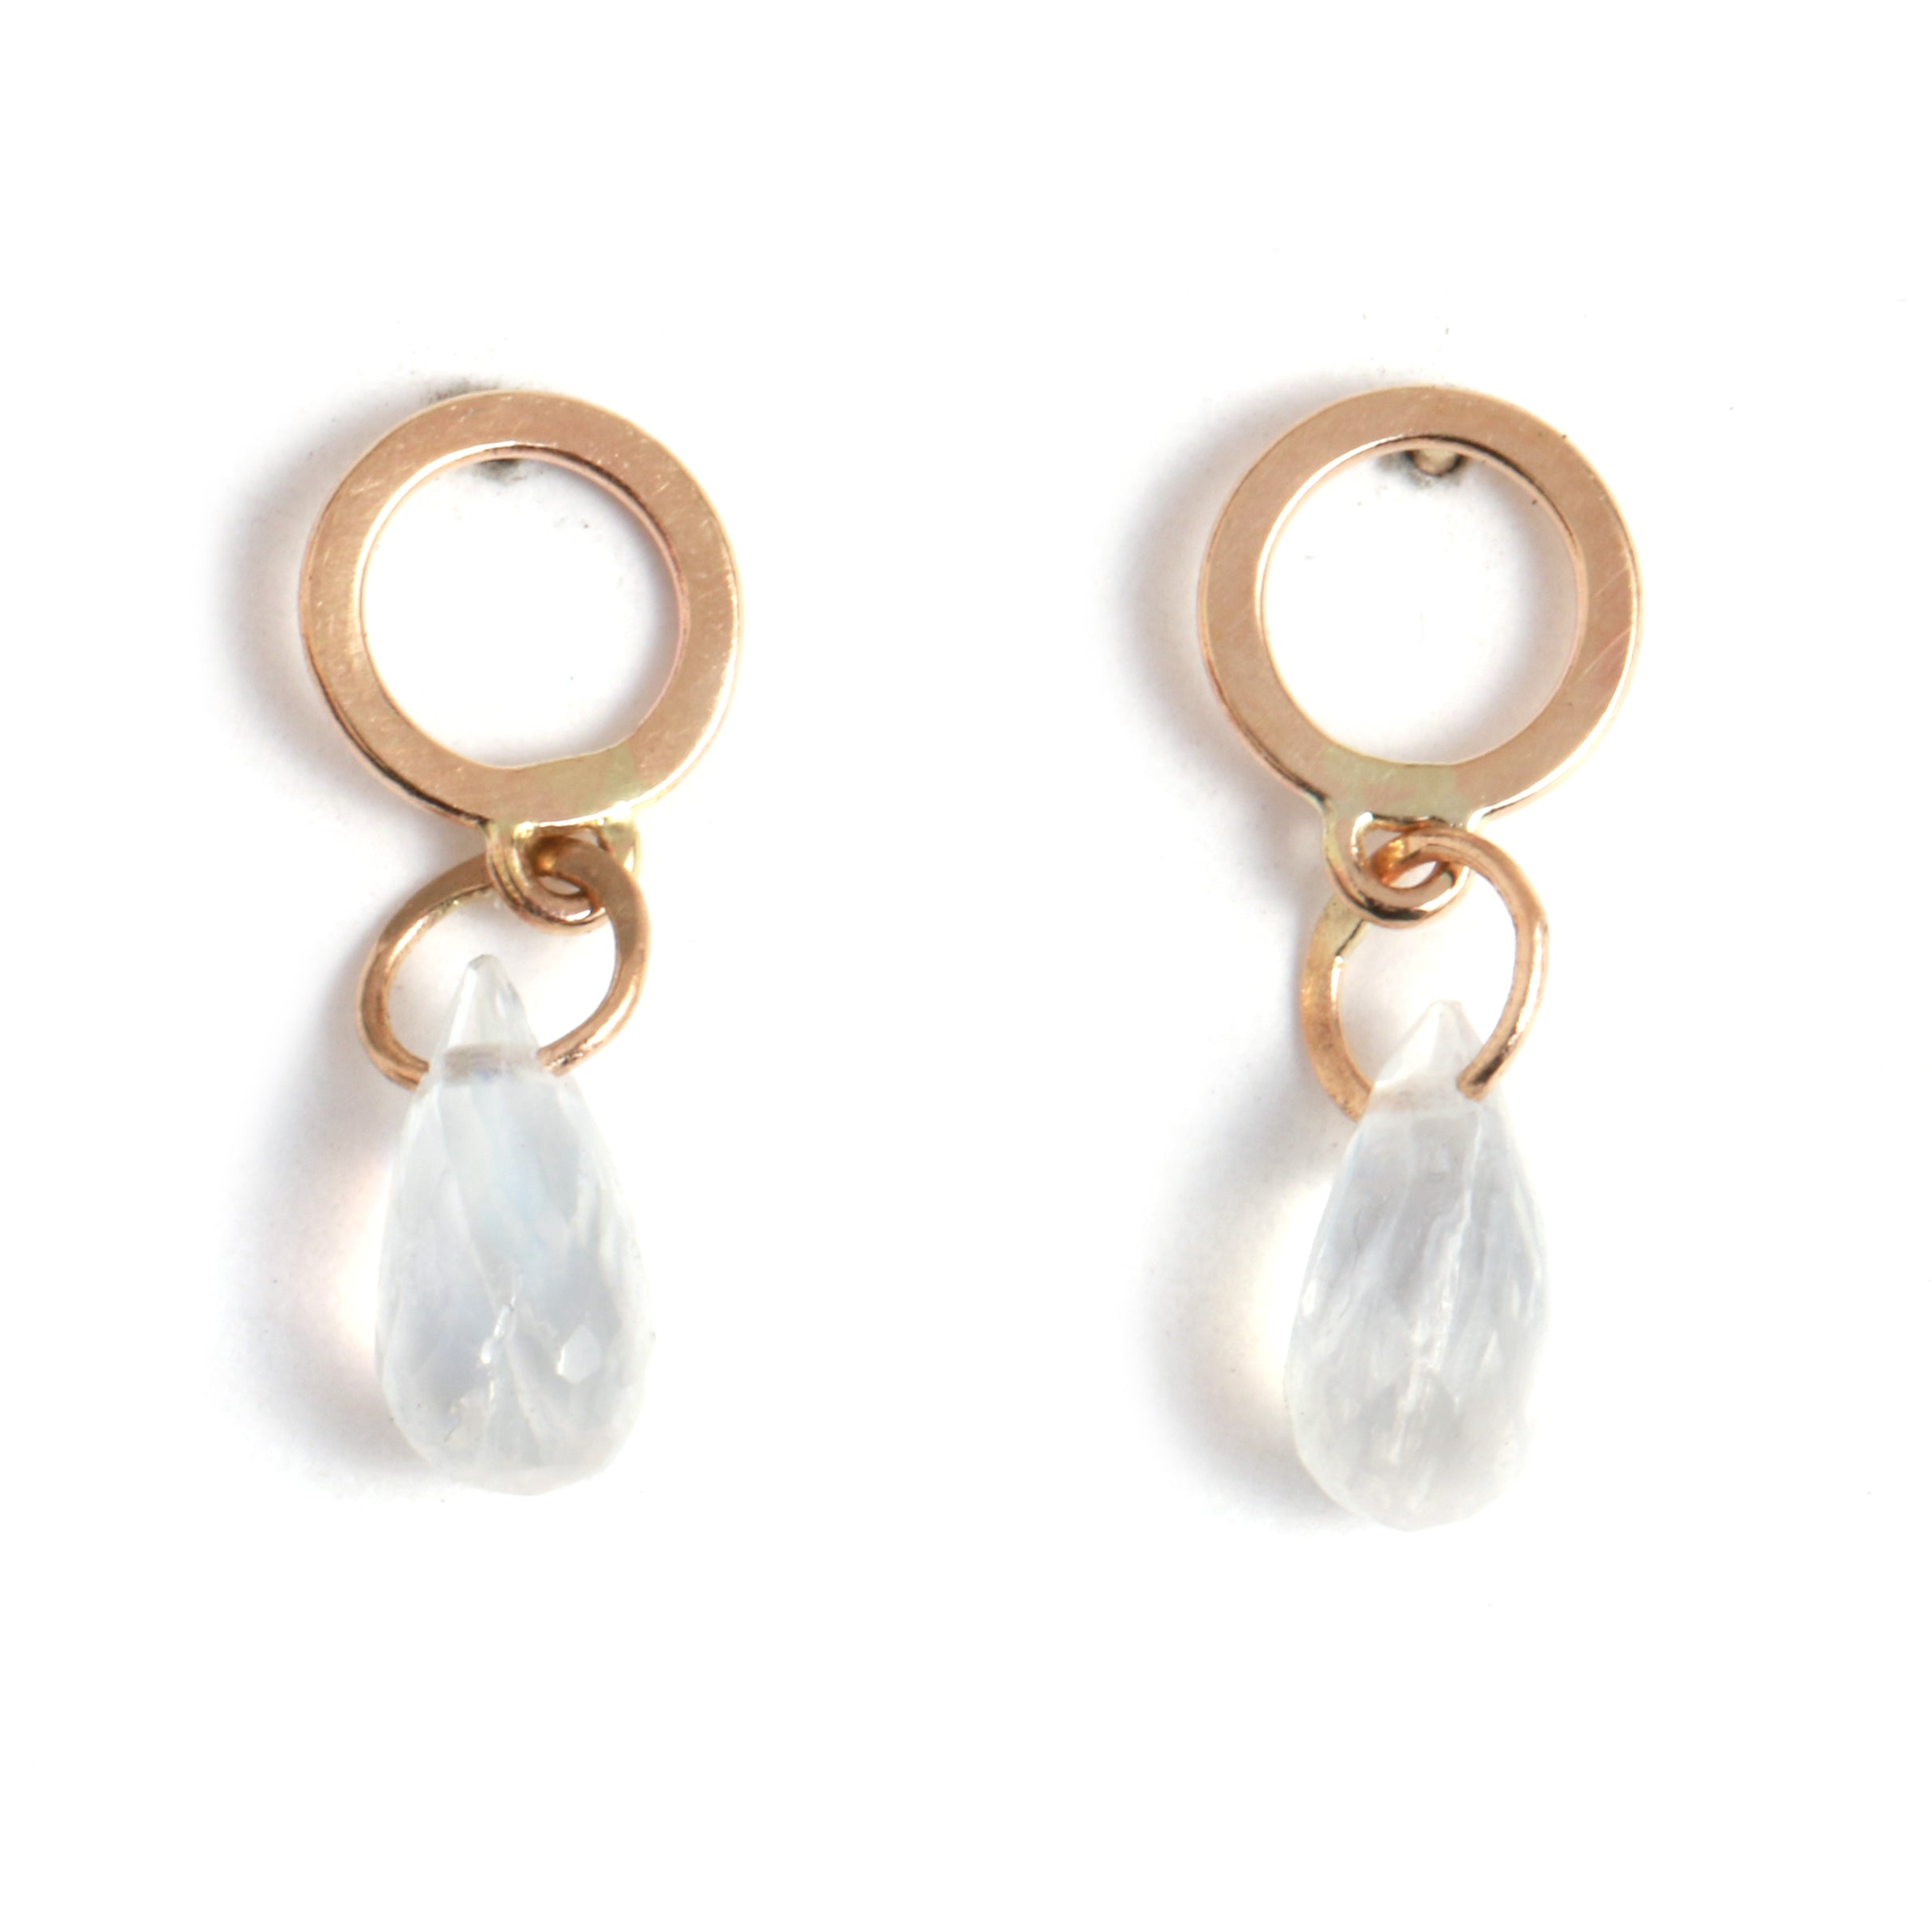 Flat Circle Stud Earrings with Moonstone Drops - Melissa Joy Manning Jewelry